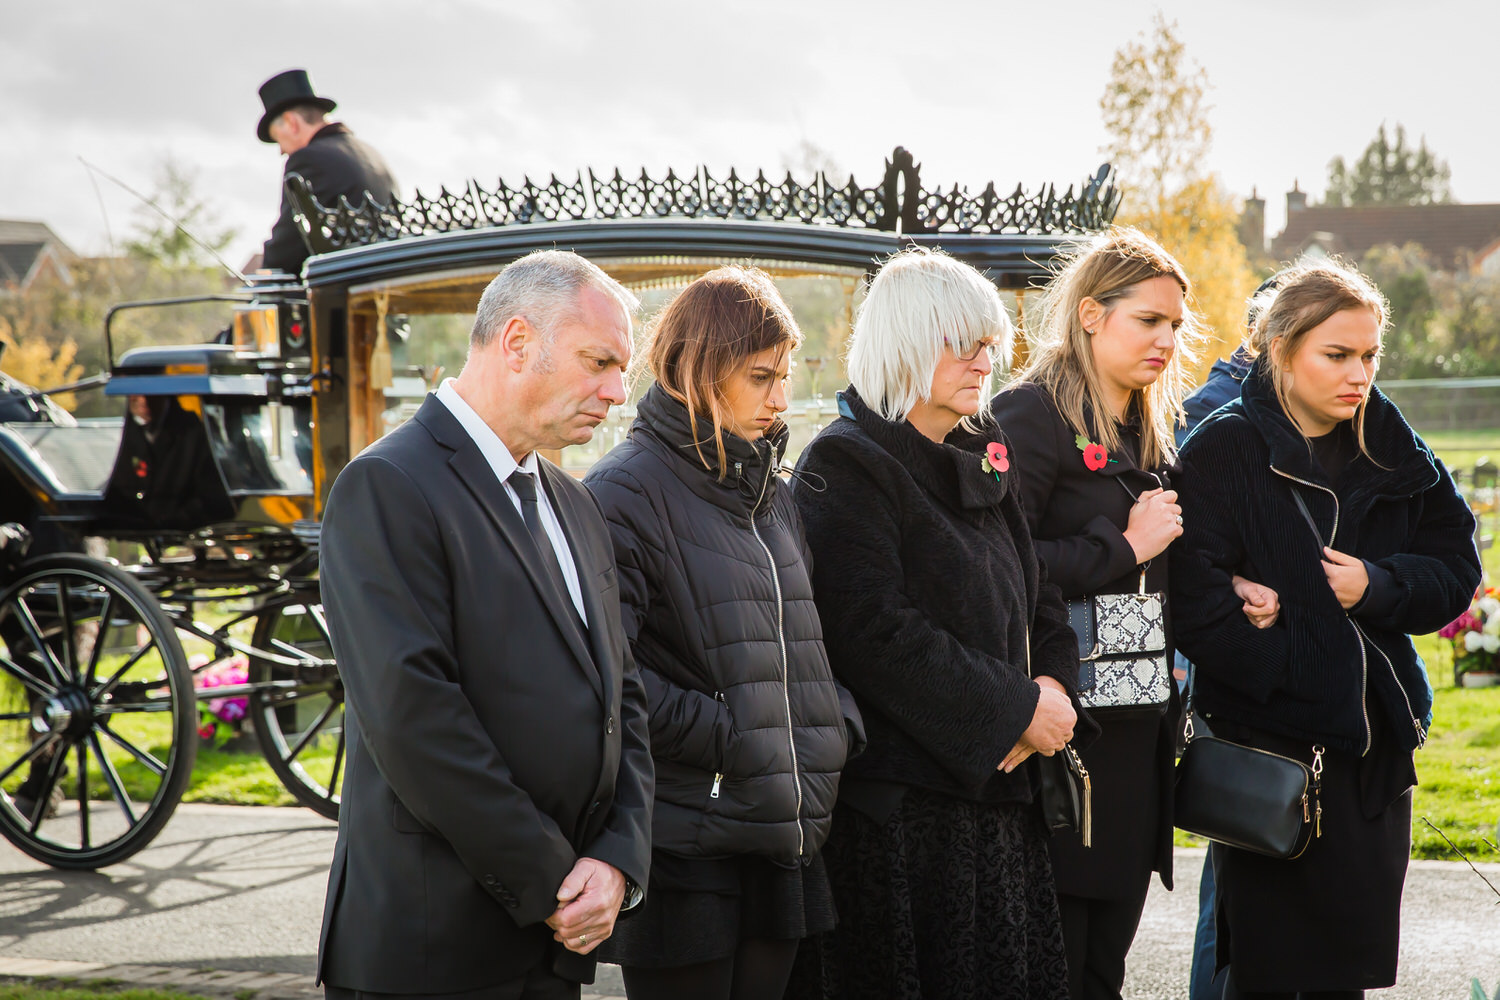 Gilroes Cemetery and Crematorium Funeral Photographer, Leicestershire